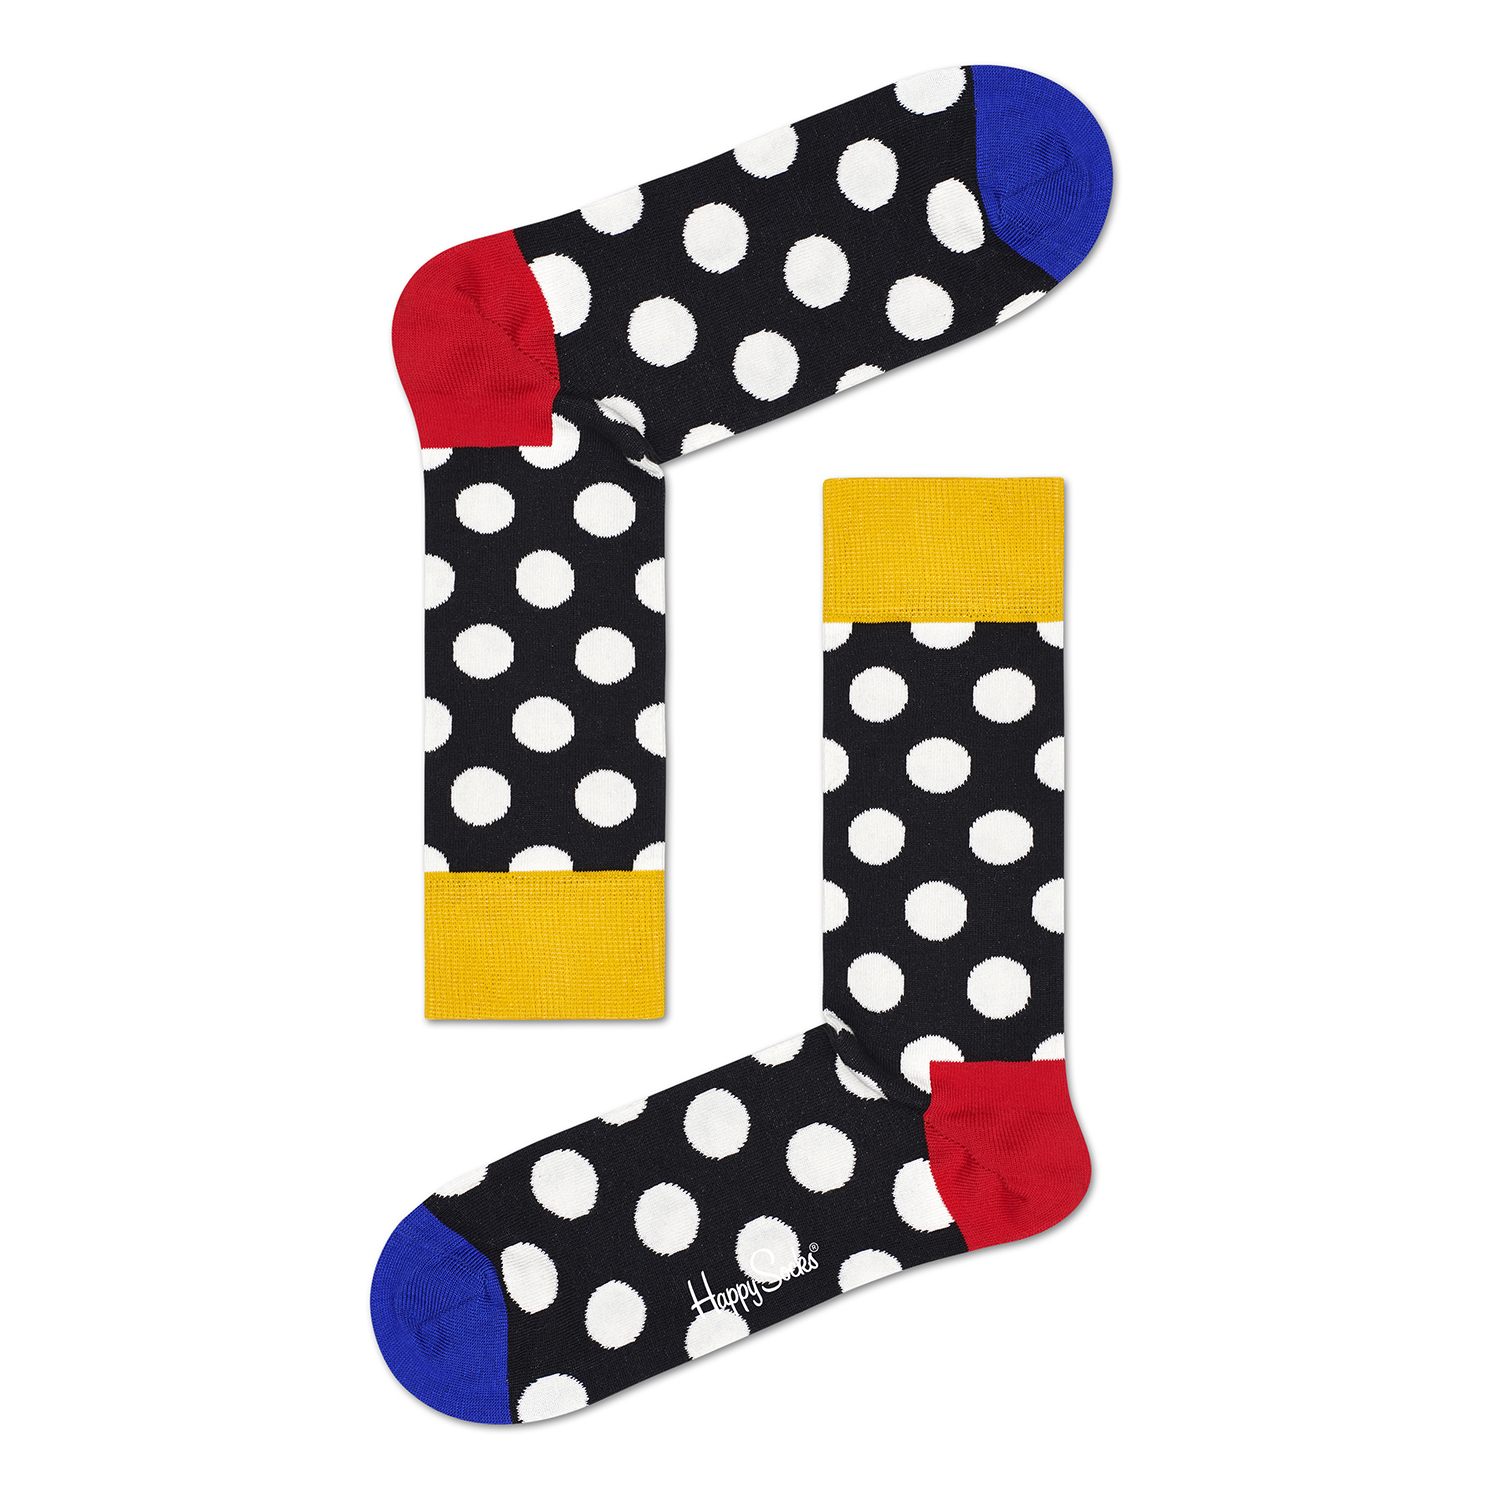 Happy Socks – Set of 3 Pairs of Super Dad Socks in Presentation Gift Box